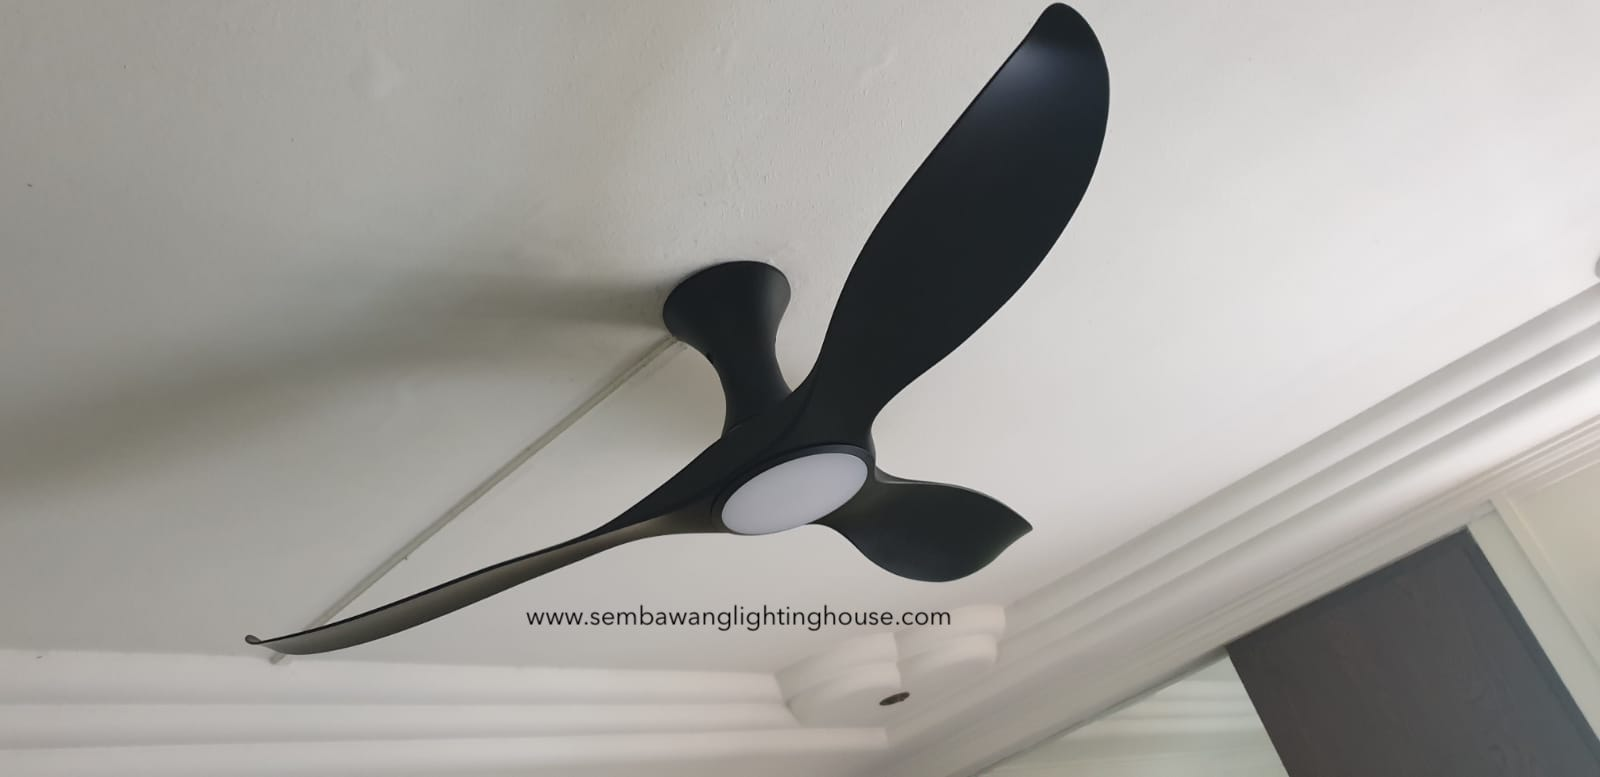 efenz-hugger-ceiling-fan-with-light-black-sembawang-lighting-house-02.jpg